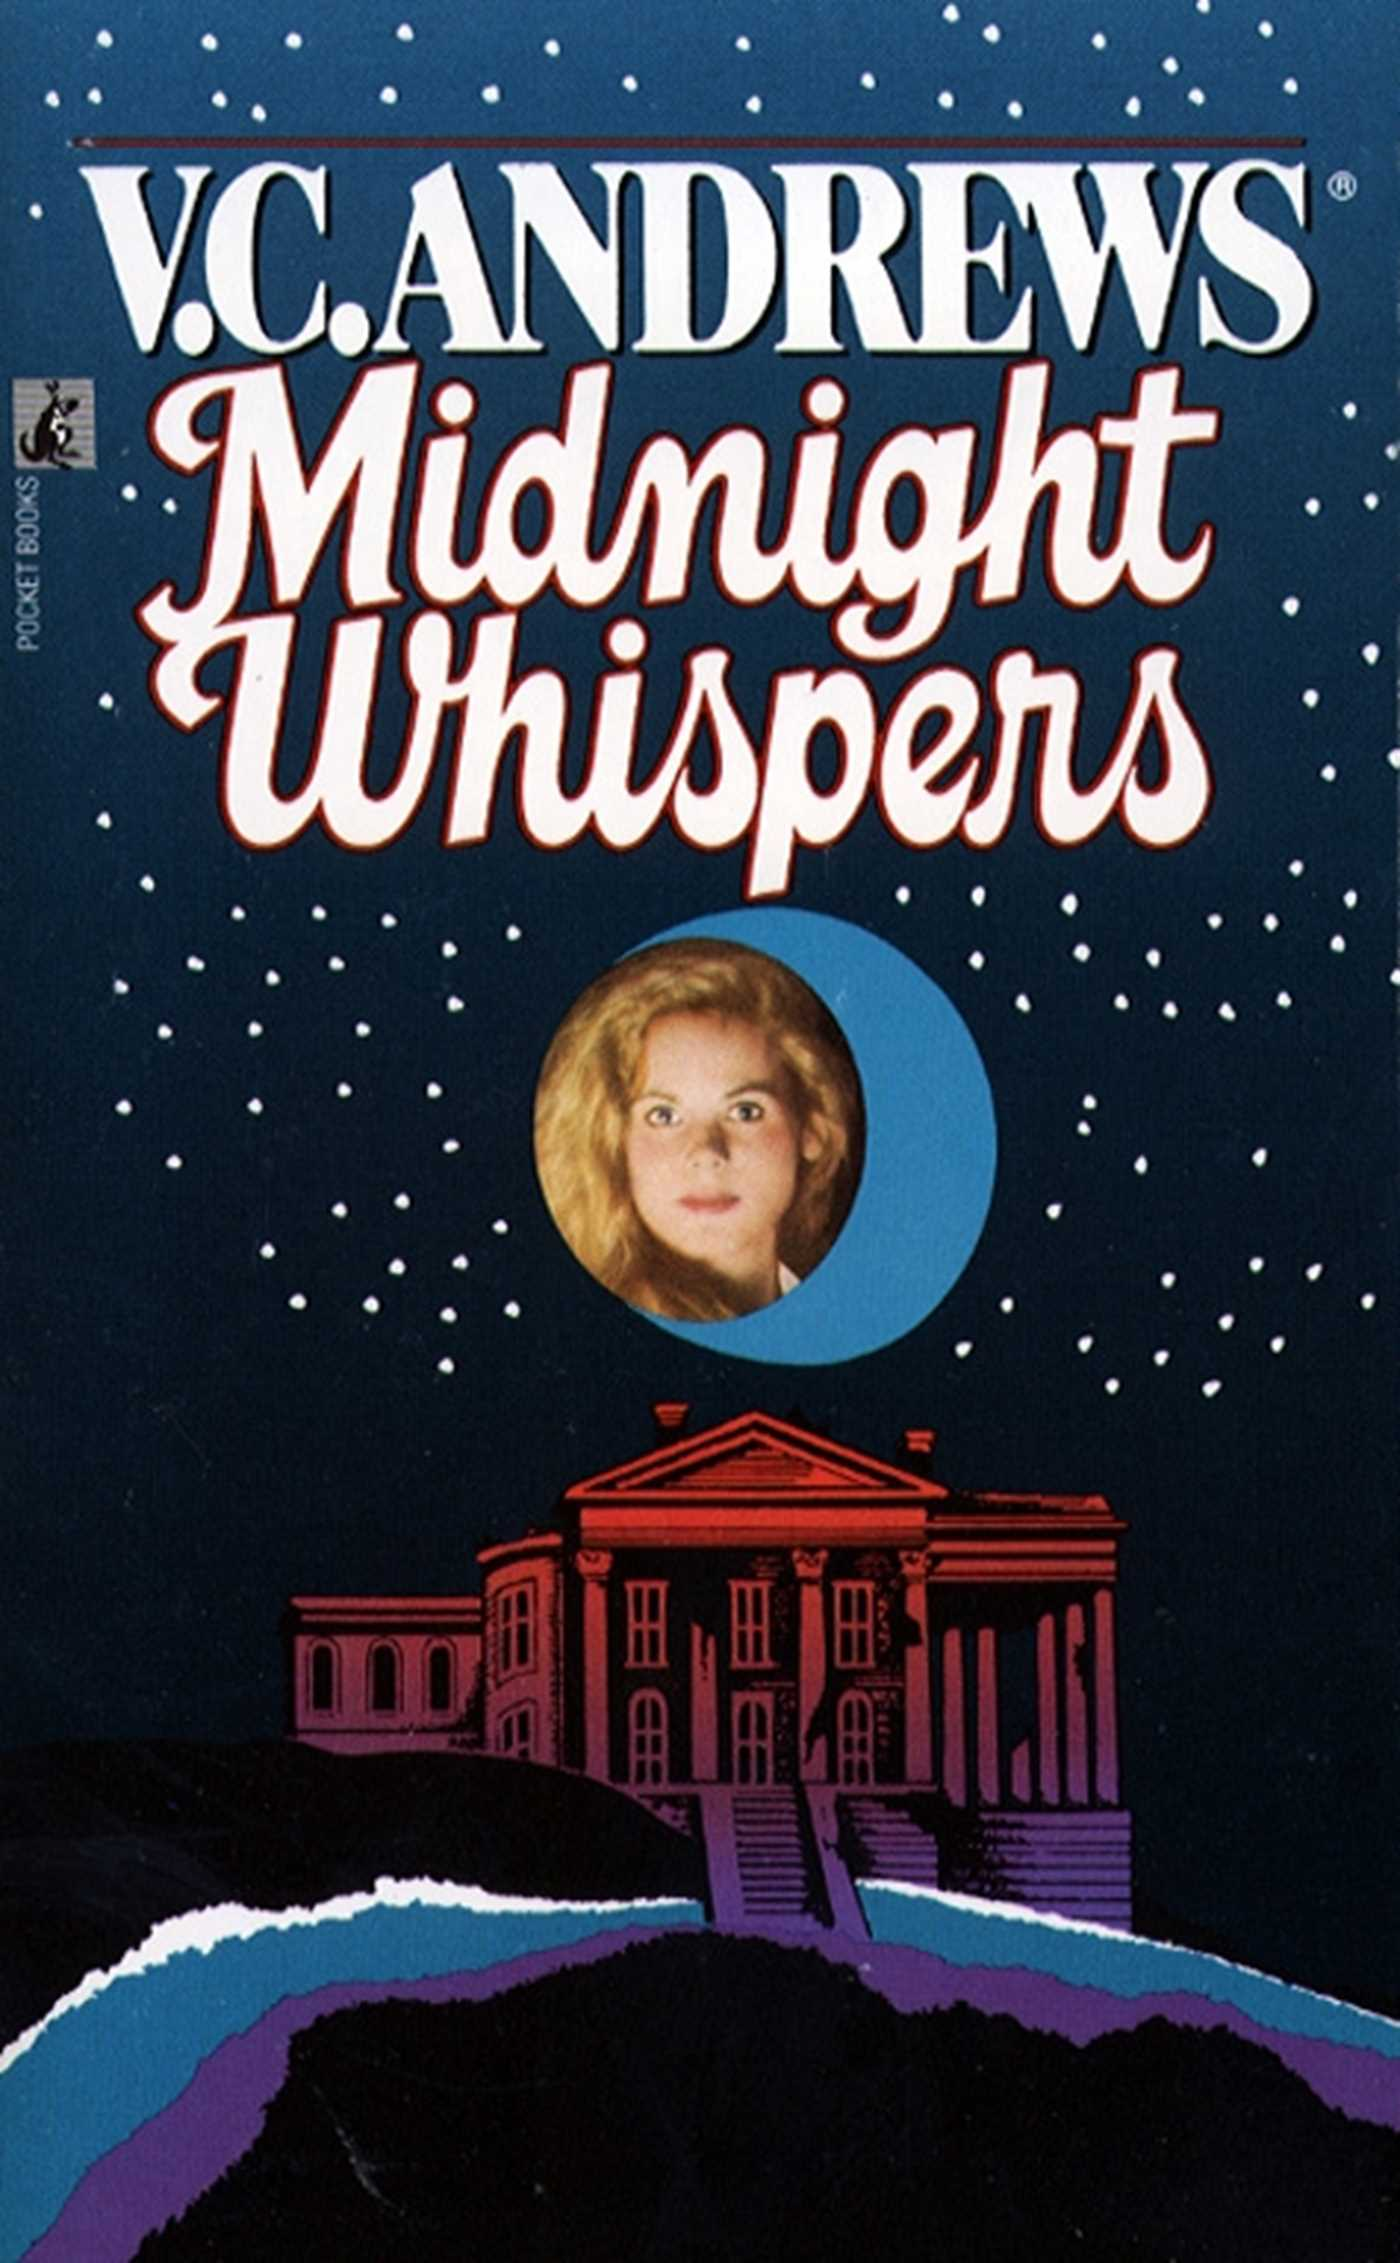 Midnight whispers 9781451602739 hr